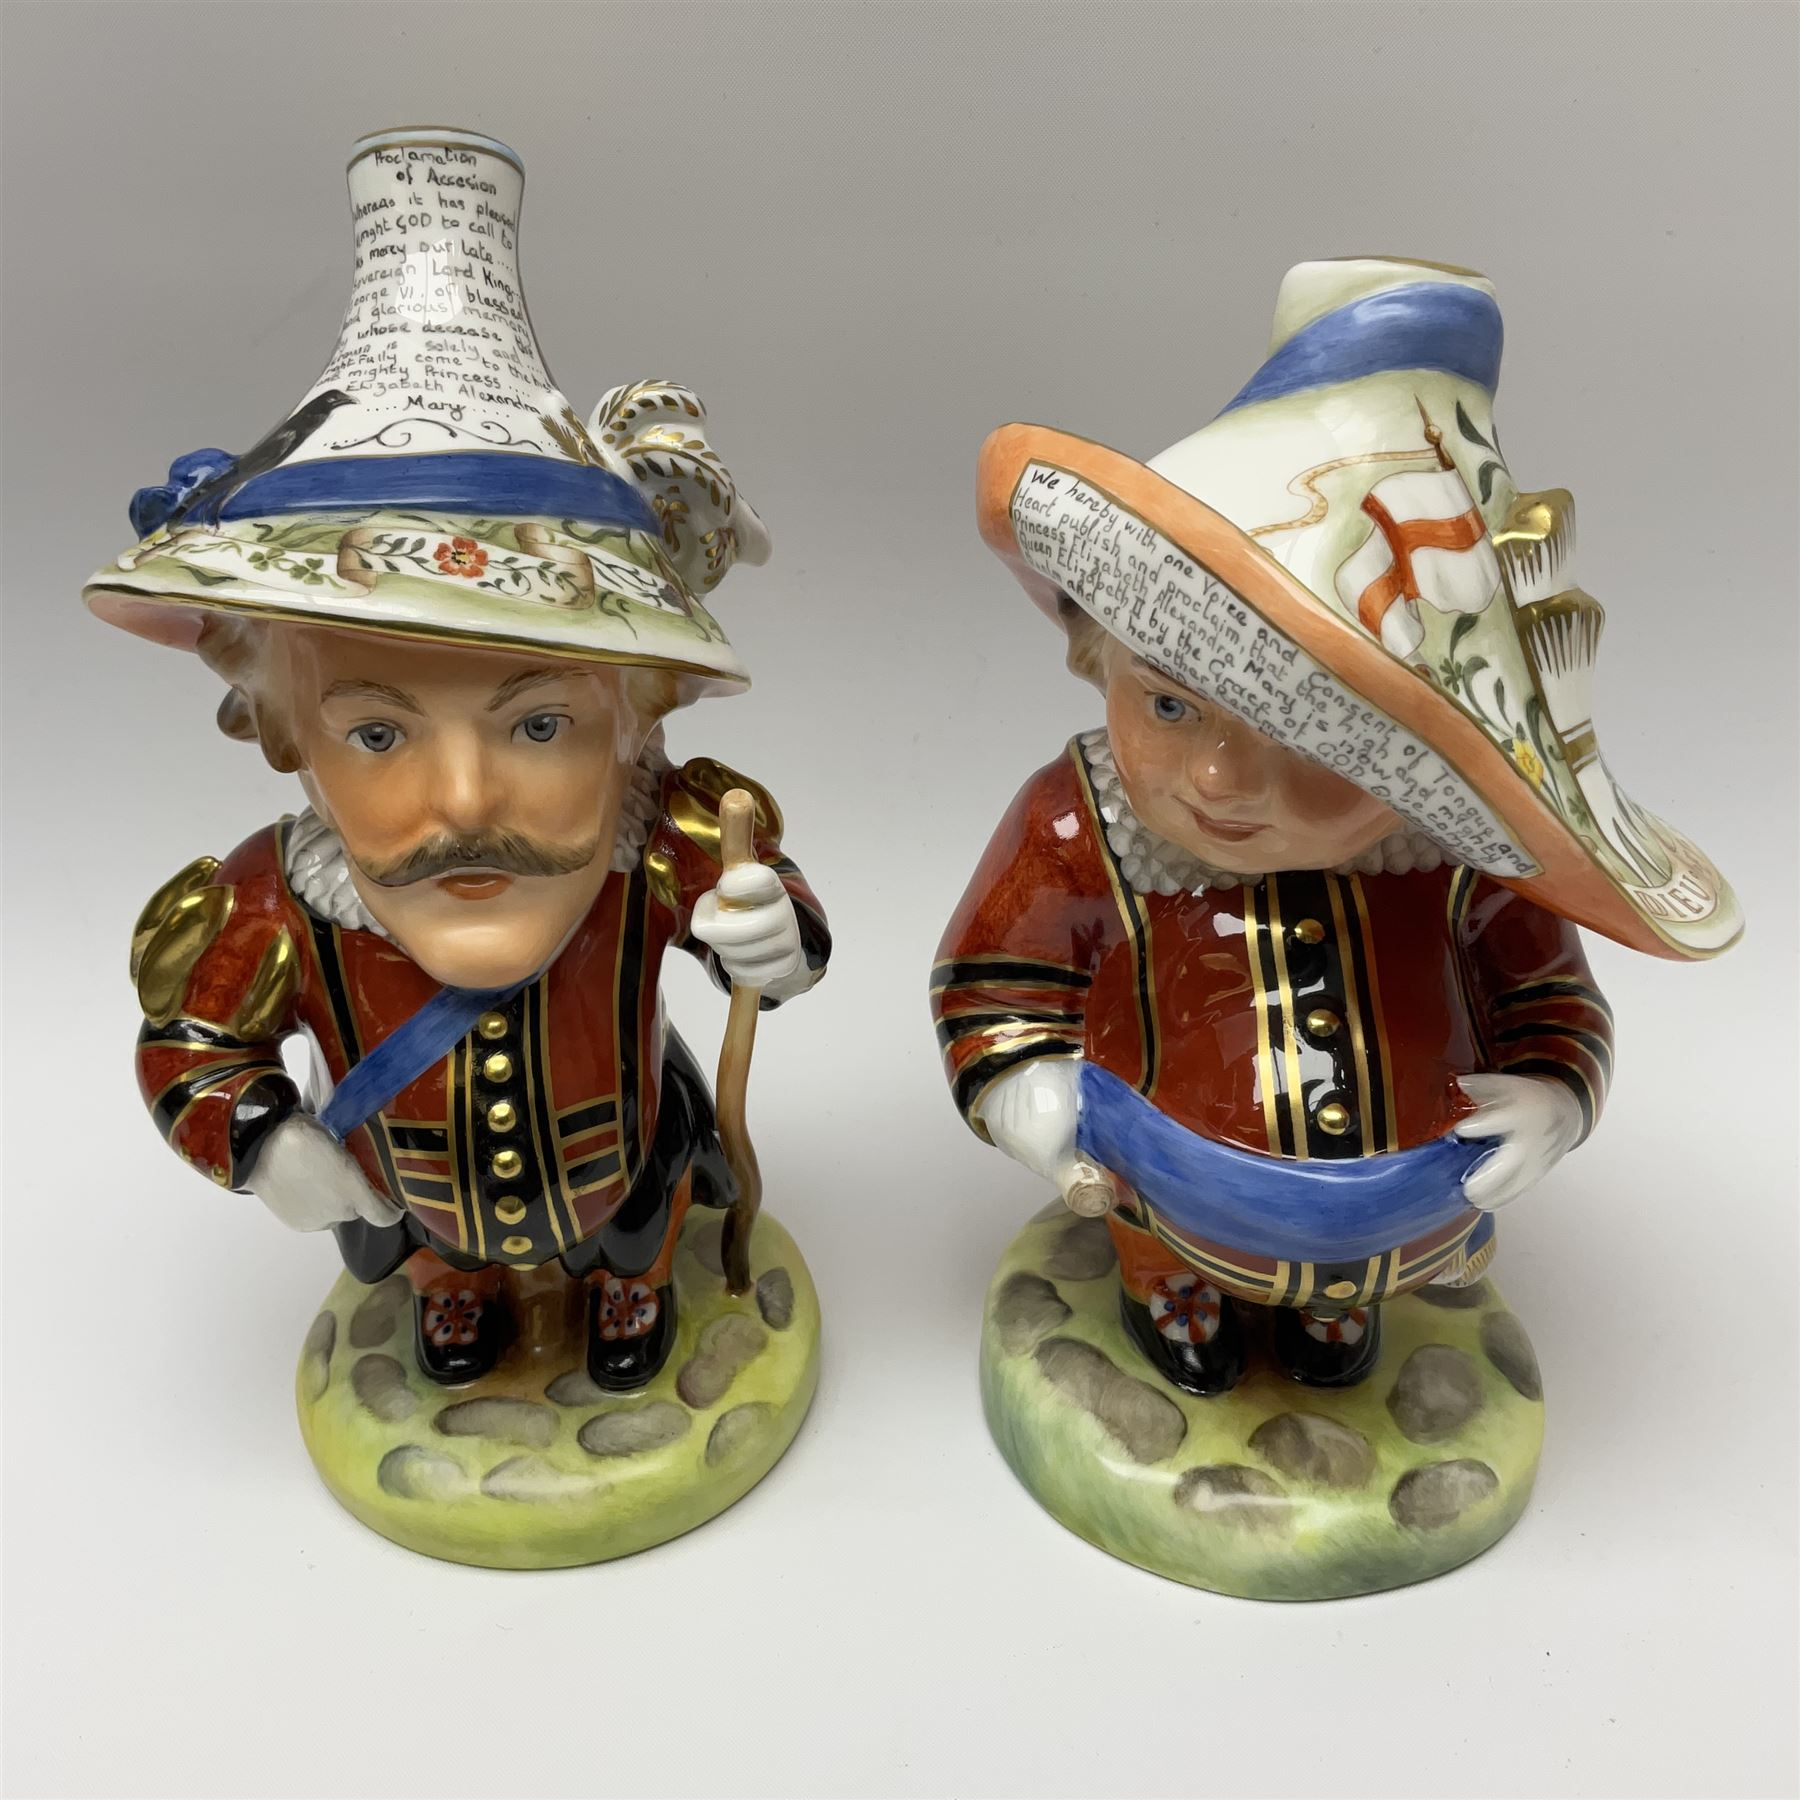 Pair of limited edition Royal Crown Derby Golden Jubilee Mansion House Dwarfs - Image 2 of 4